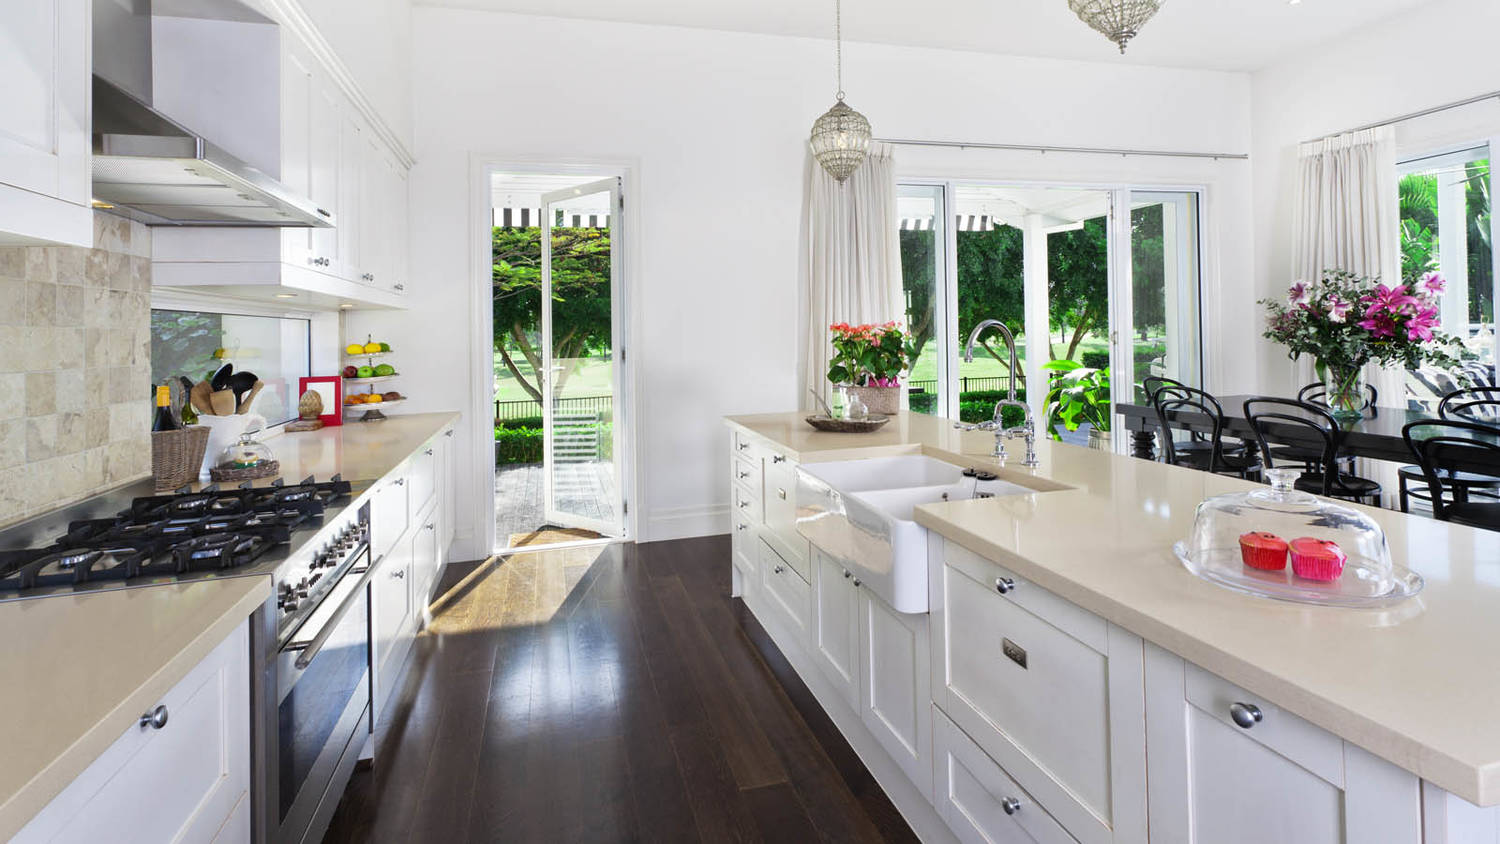 Home Staging Tip #7: Deep Clean